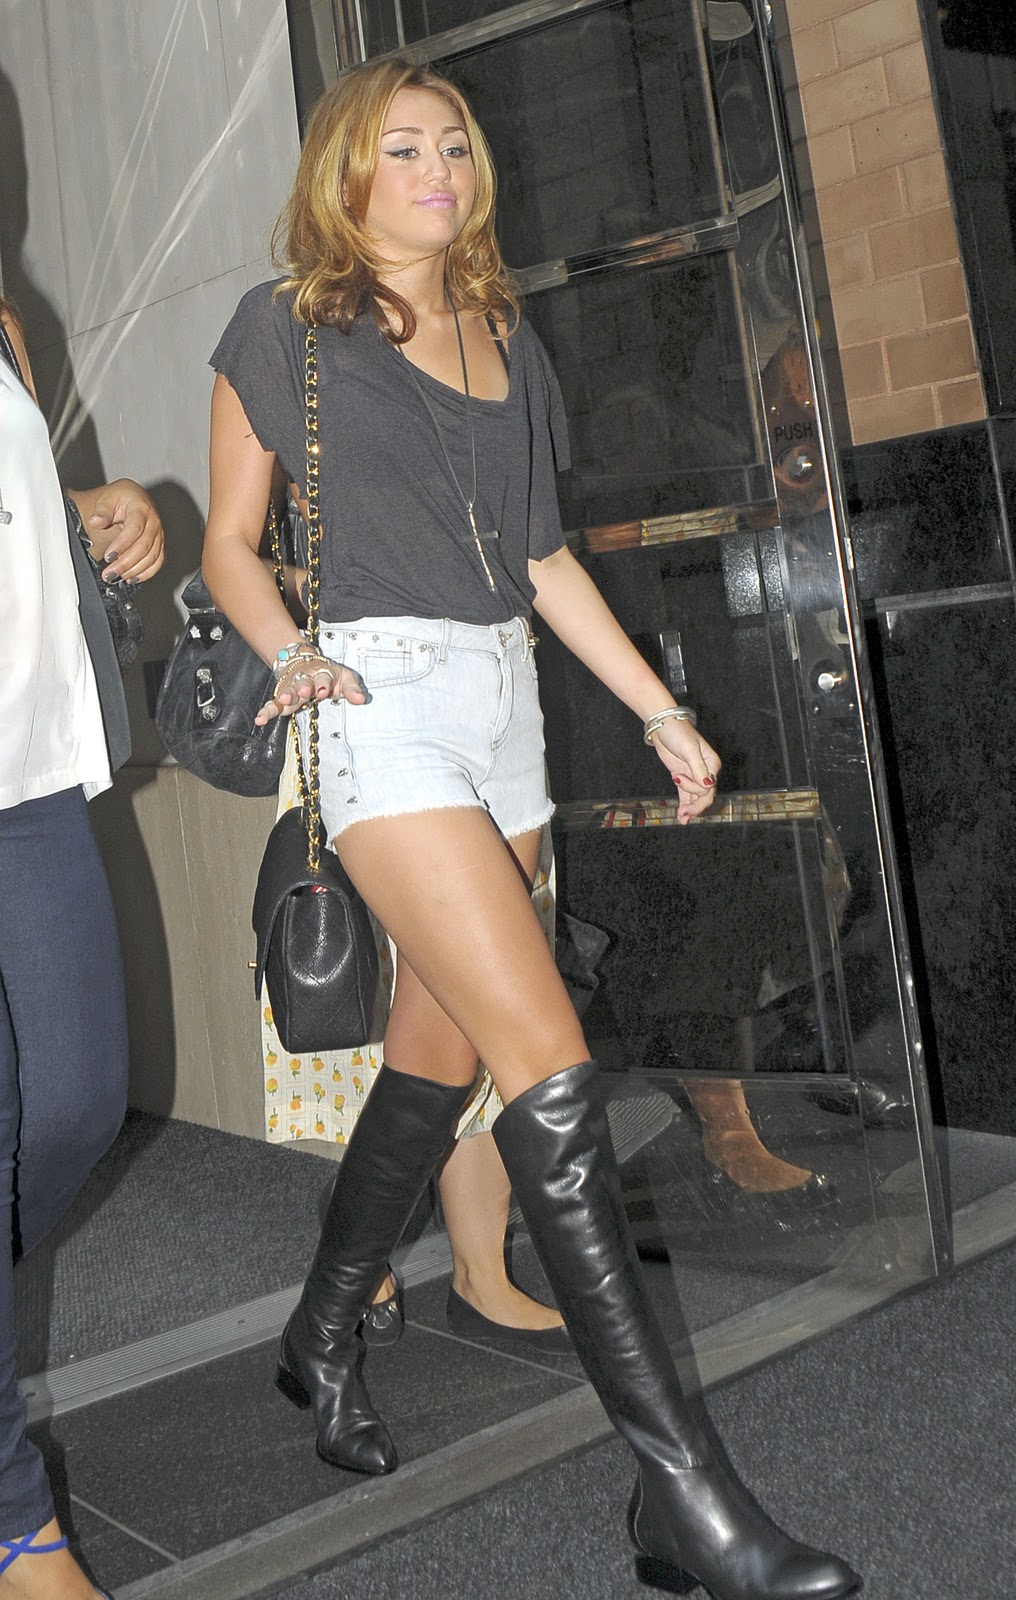 jeans and boots  miley cyrus megapost 6 parts 258 pics